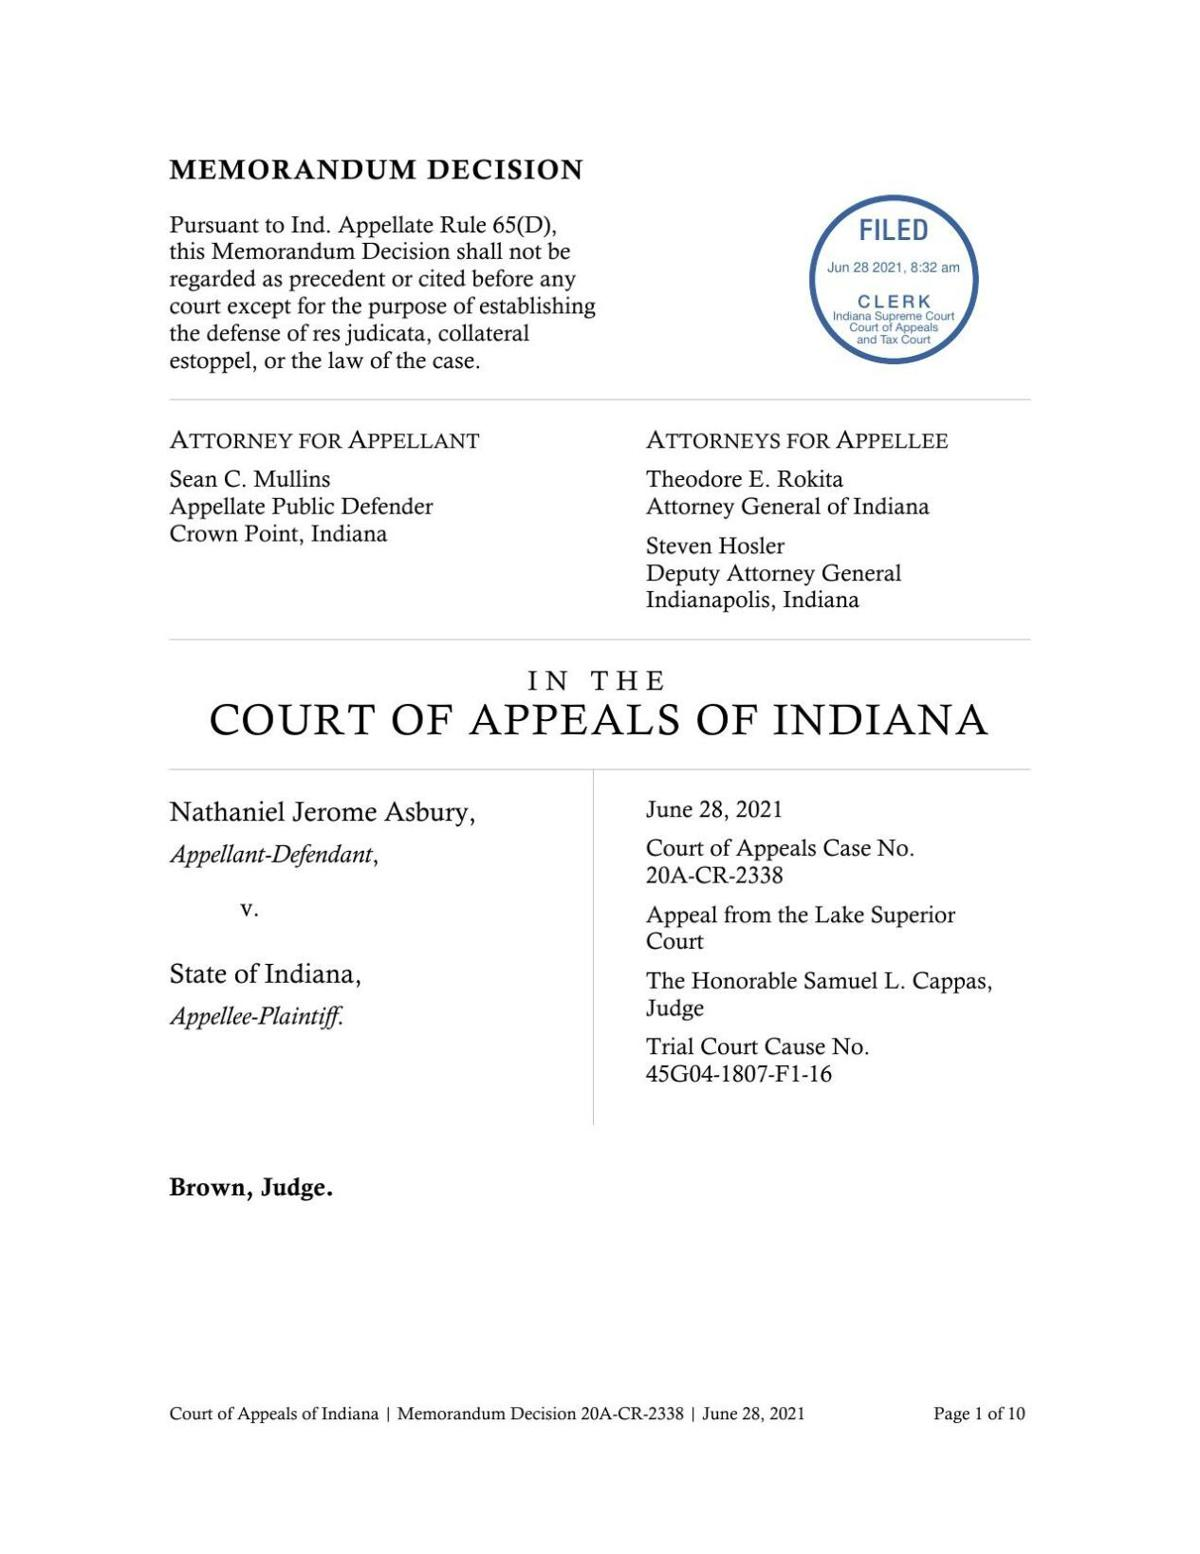 Asbury v. State ruling of Indiana Court of Appeals